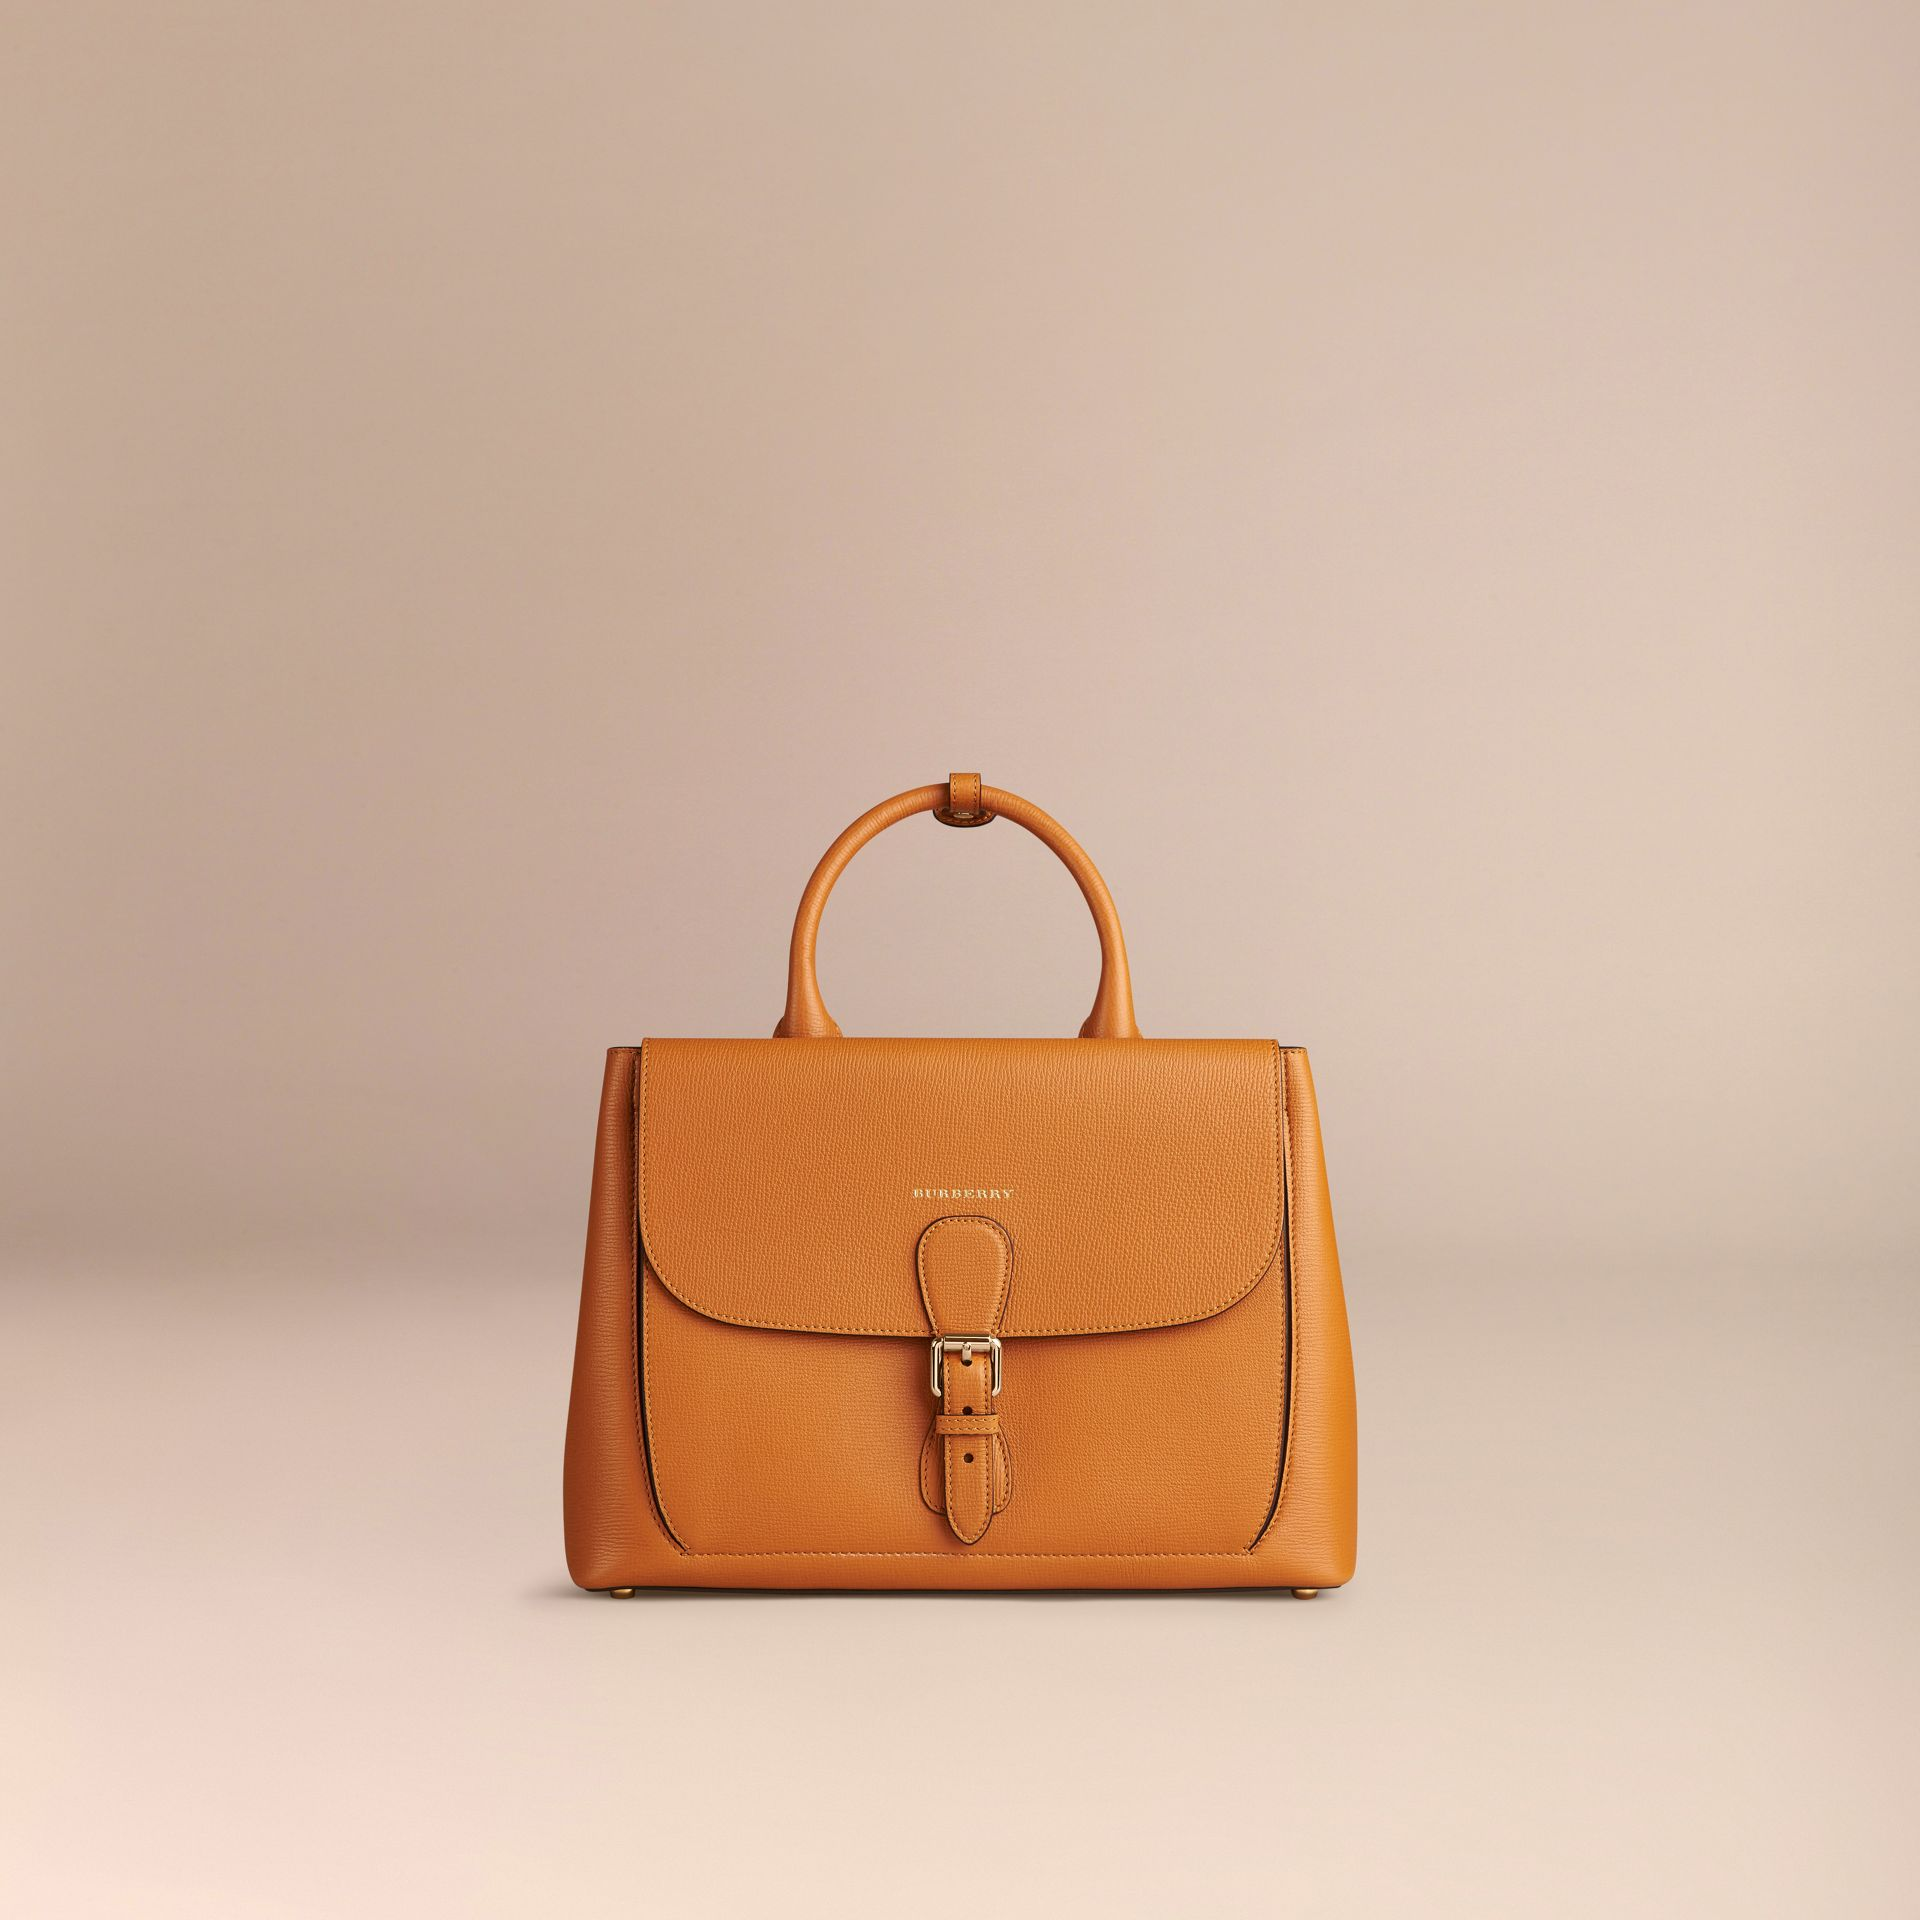 Cognac The Medium Saddle Bag in Grainy Bonded Leather Cognac - gallery image 7